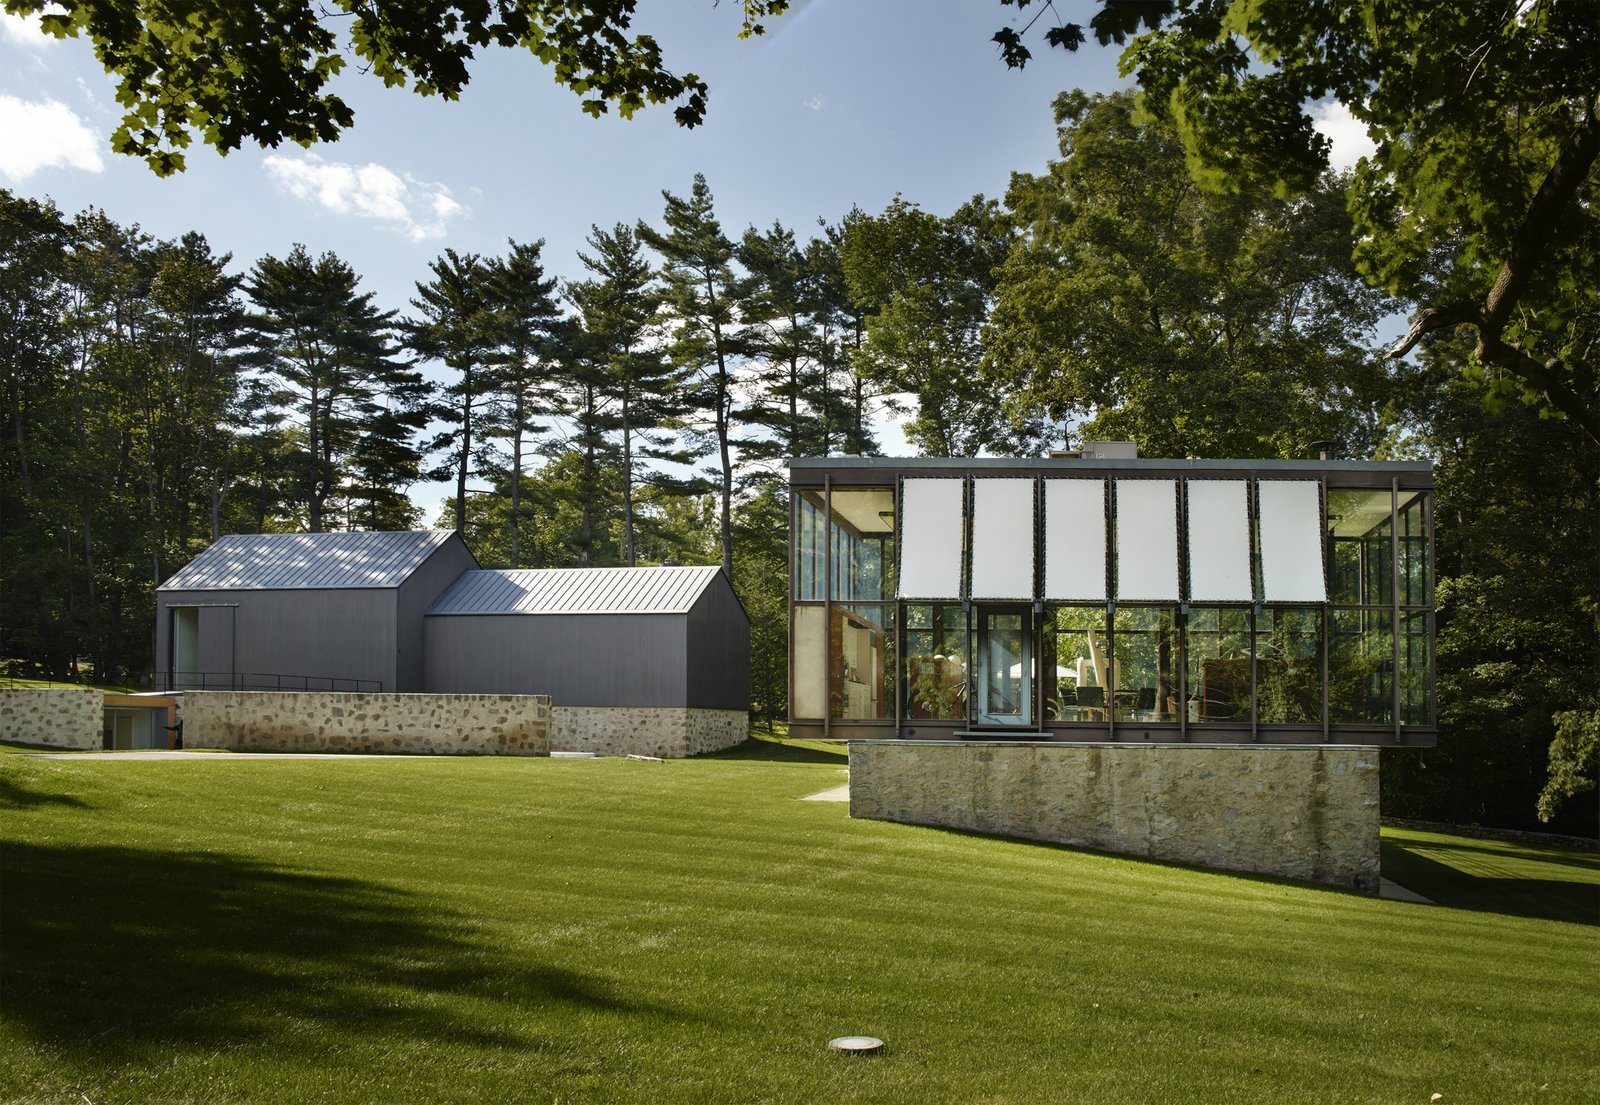 Exterior, Glass Siding Material, Gable RoofLine, Stone Siding Material, Mid-Century Building Type, Flat RoofLine, House Building Type, and Metal Siding Material  Best Photos from A Midcentury Marvel Designed by Philip Johnson in New Canaan Asks $8.5M